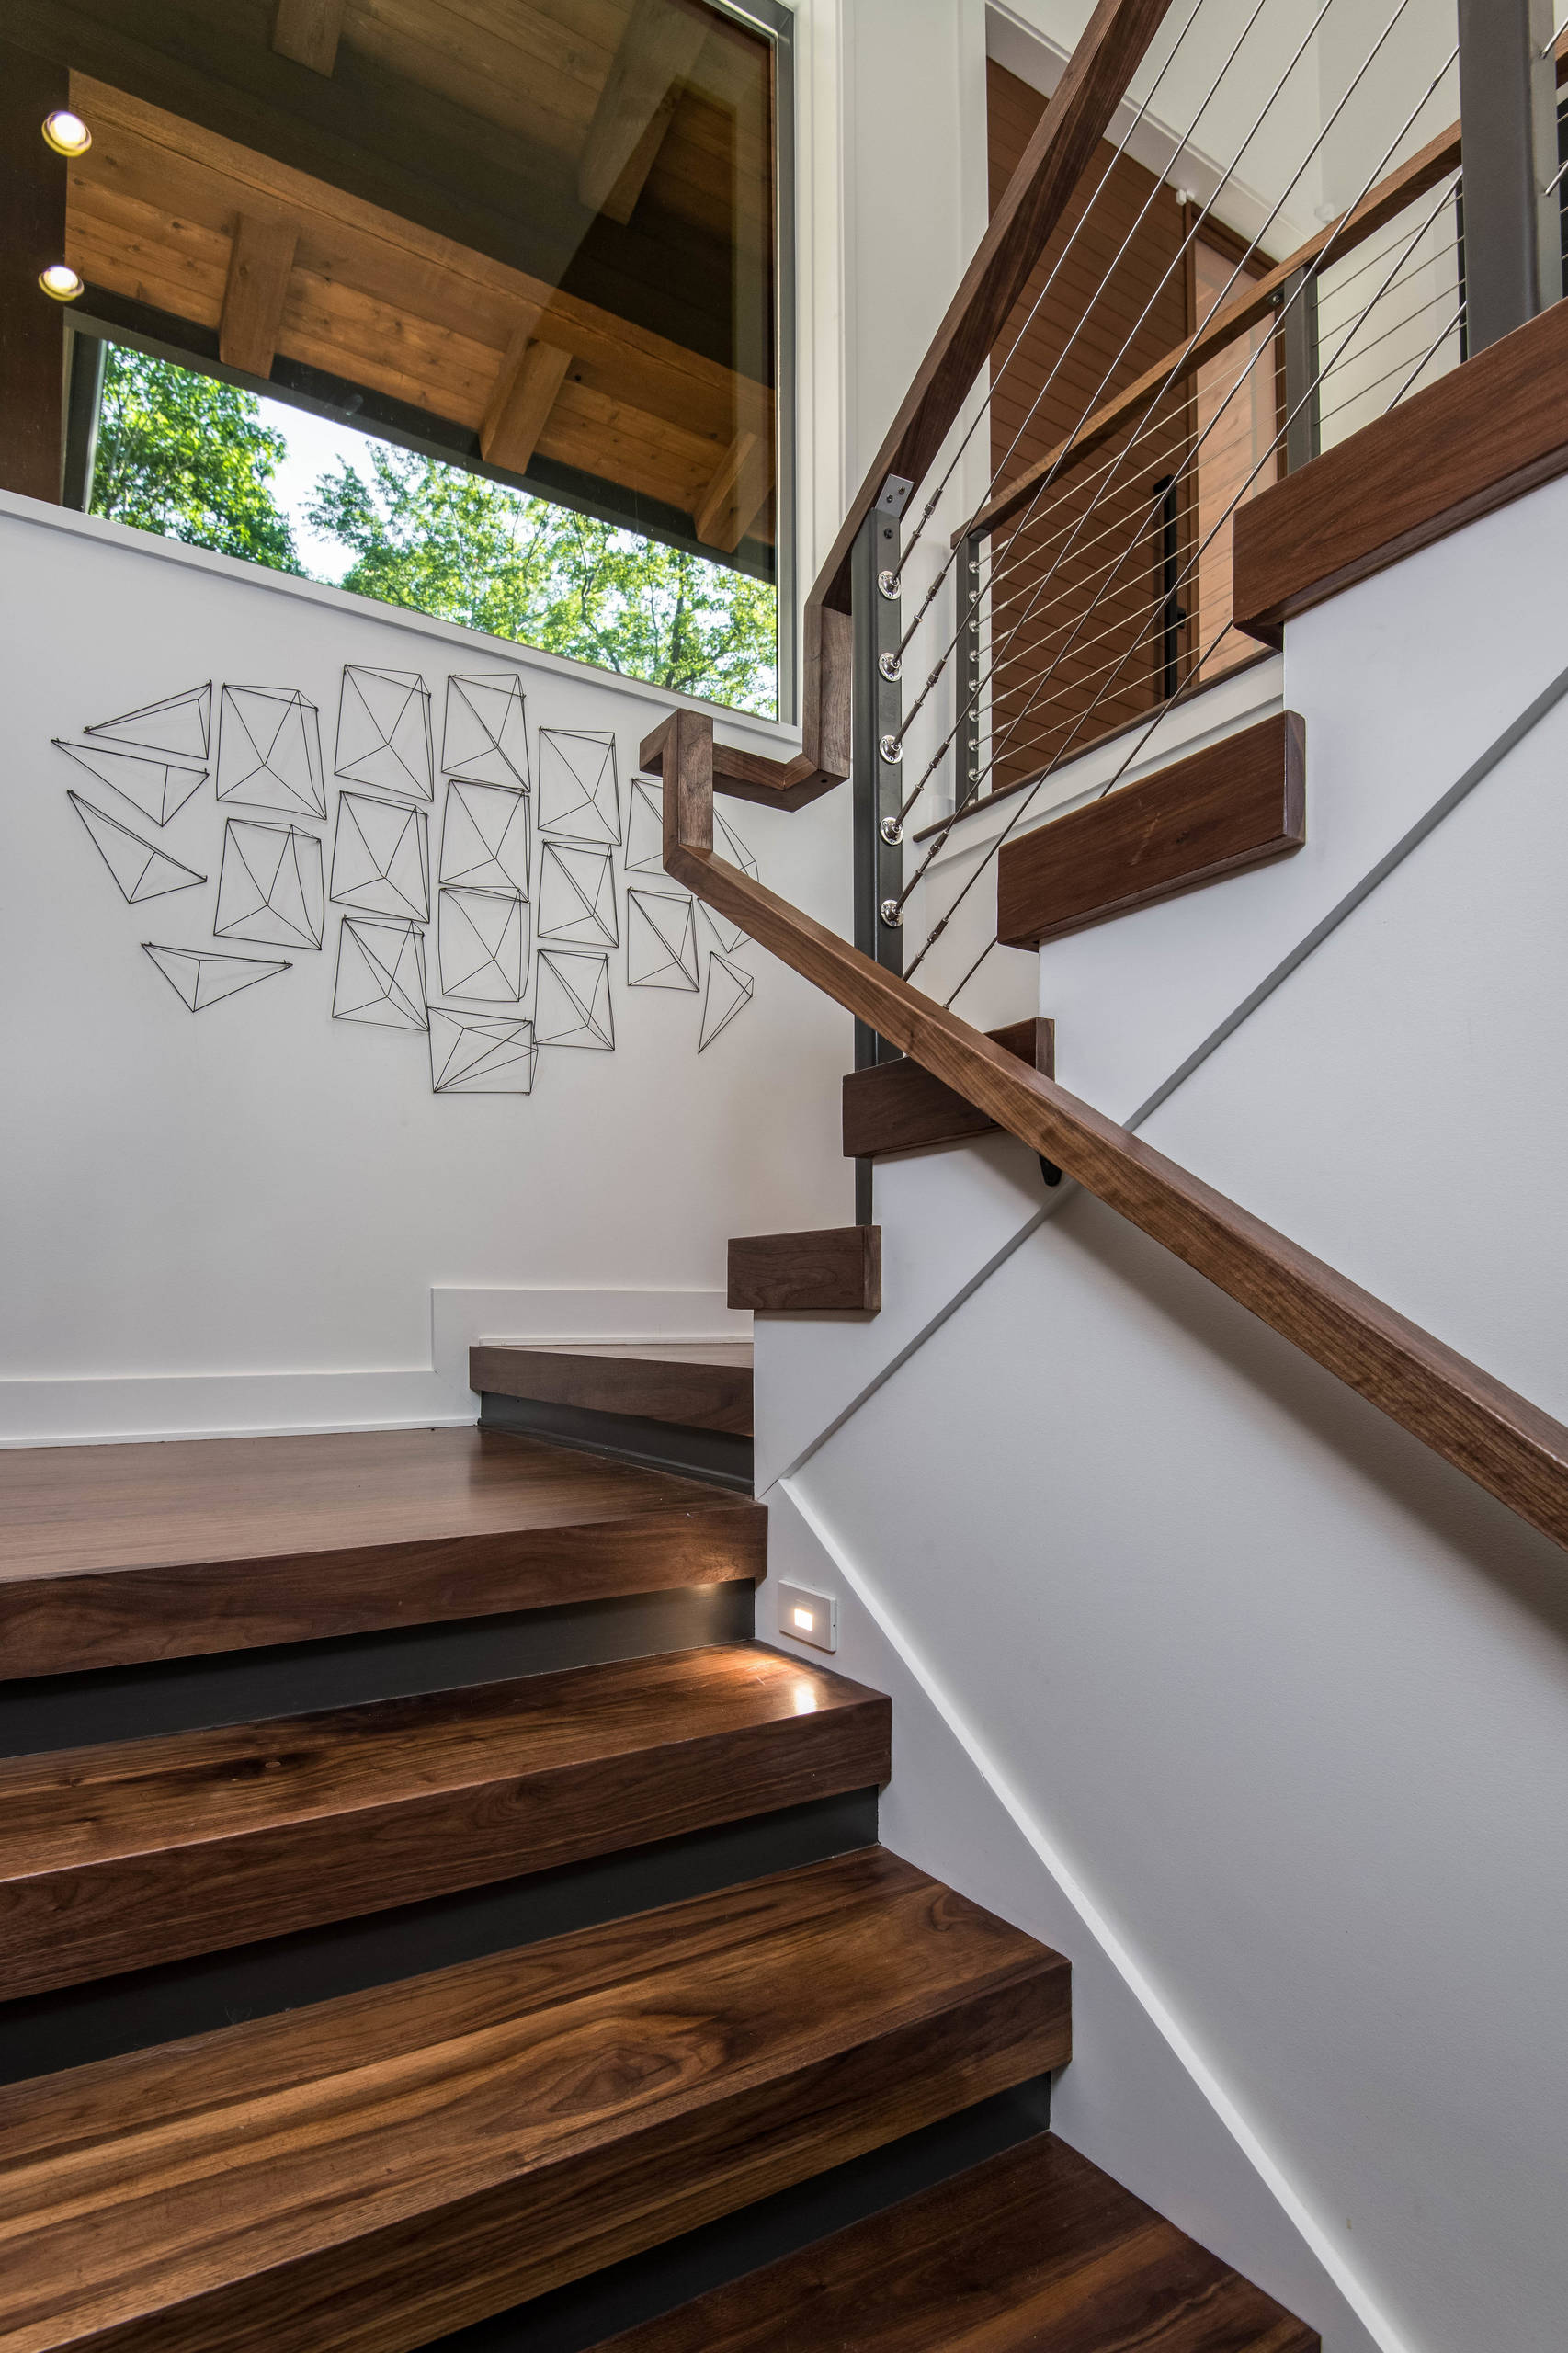 75 Beautiful Modern Staircase Pictures Ideas January 2021 Houzz